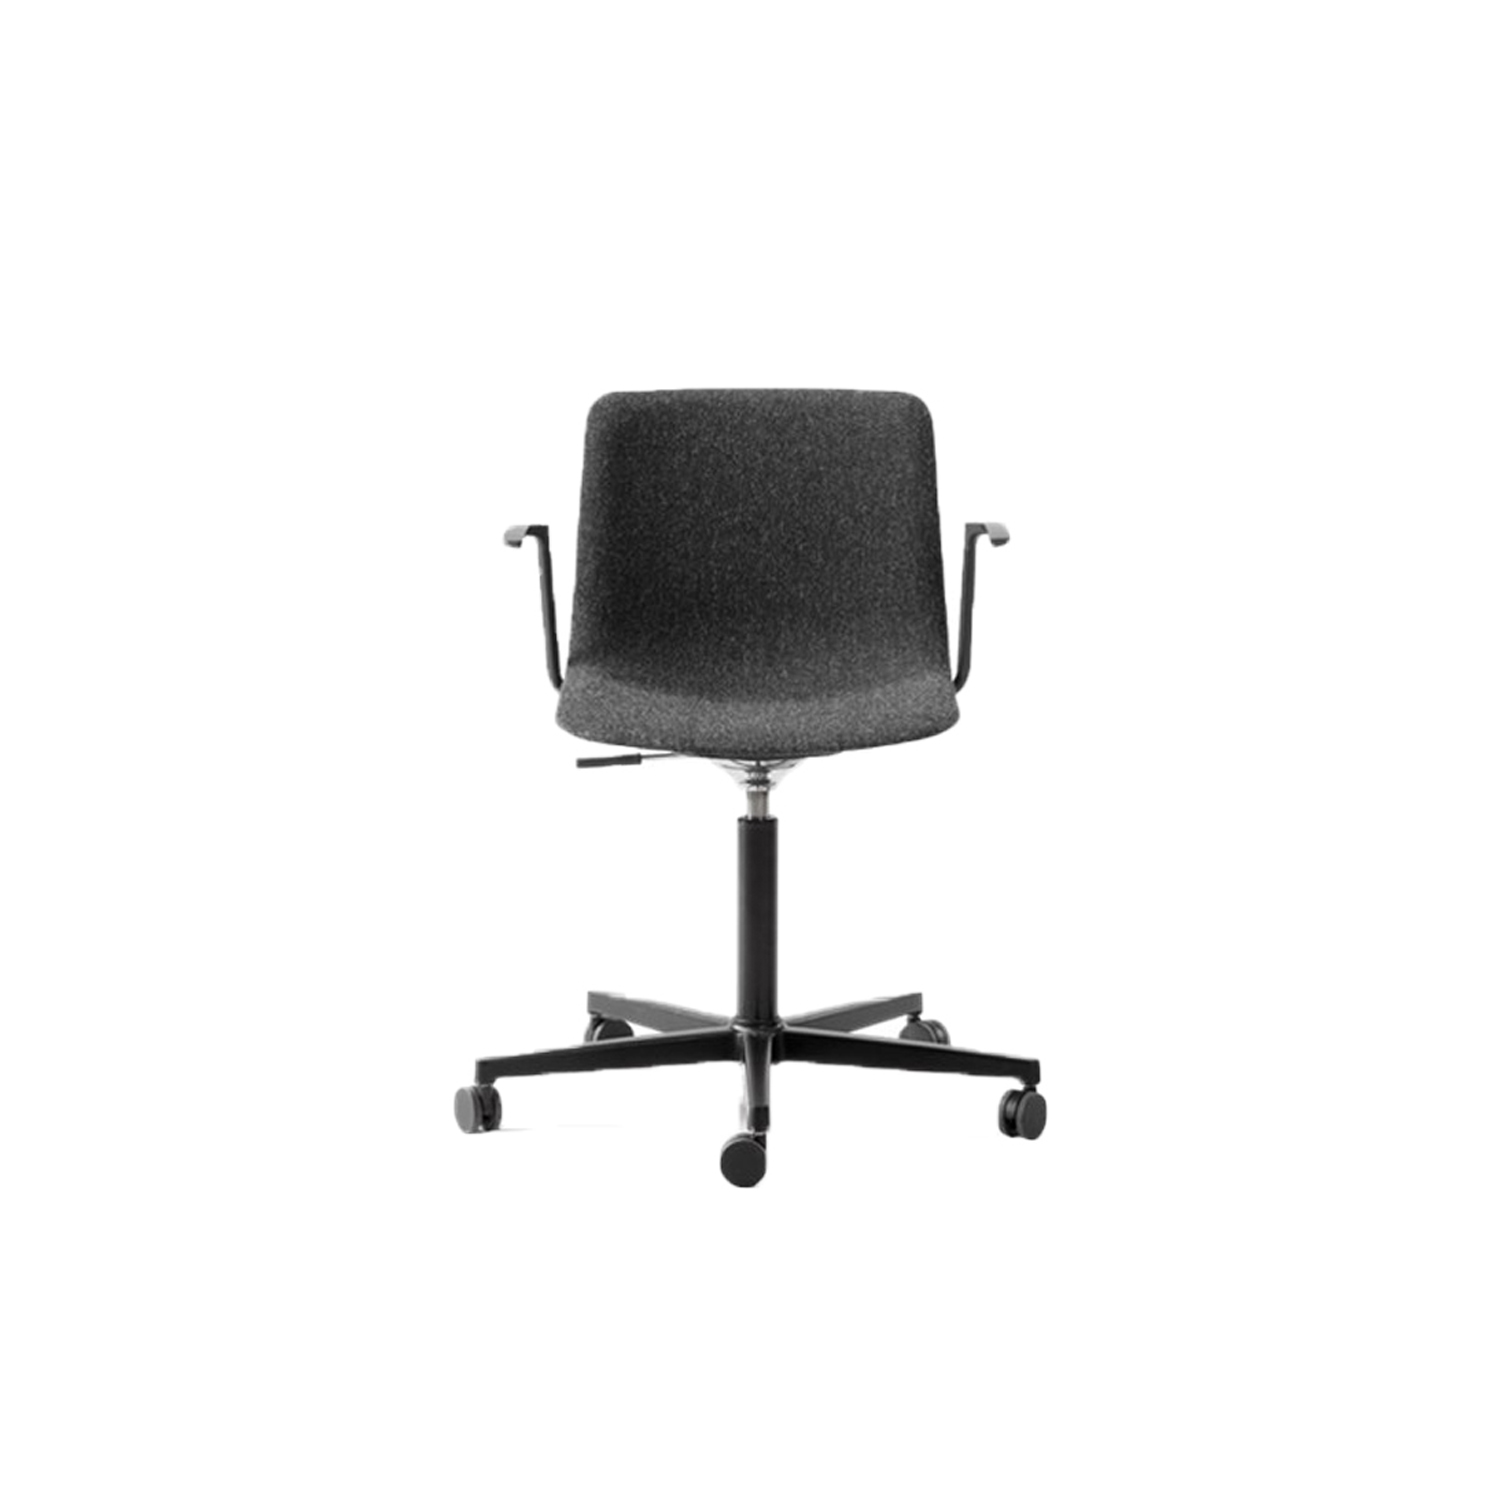 Pato Office 5 Point Swivel Base Armchair Fully Upholstered  - Pato Office Armchair is fitted with a 5-point star swivel base on casters. The frame has a swivel feature with height adjustable gaslift and a tilt function for comfortable task seating. The arms can be used for suspension on any table. The chair can be tuned from basic to exclusive with optional upholstery.  Pato is a prime example of our focus on sustainability and protecting the environment, reflected in a chair that's 100% renewable and recyclable. All components can be incorporated into future furniture production, thus contributing to a circular economy by minimising the use of materials, resources, waste and pollution.   Merging traditional production methods with cutting-edge technology, Pato is a human-centric, highly versatile series of multi-purpose functional furniture that draws on our in-depth experience with materials, immaculate detailing and heritage of fine craftsmanship. Allowing us to apply our high standards of texture, finish and carpentry techniques to an array of materials in addition to wood for products aimed at a mass market.   With its clean lines and curves, Pato echoes the ethos of Danish-Icelandic design duo Welling/Ludvik. Demonstrating their belief that good design has the ability to be interesting, even when reduced to its most simple form. Where anything extraneous is eliminated and every detail has a purpose.   Together we spent nearly three years developing the shell structure to have a soft surface that's also wear and tear resistant. Enhancing the chair's ability to optimally conform to the user's body is a subtle beveled edge. A technique from classic cabinetmaking, which gives the chair a sense of handcrafted finesse. Each Pato is detailed and finished by hand by our highly skilled crafts people, who refine the beveled edge and the silky, resilient surface. Setting a new standard for the execution and finish of polypropylene.   Since the success of its initial laun